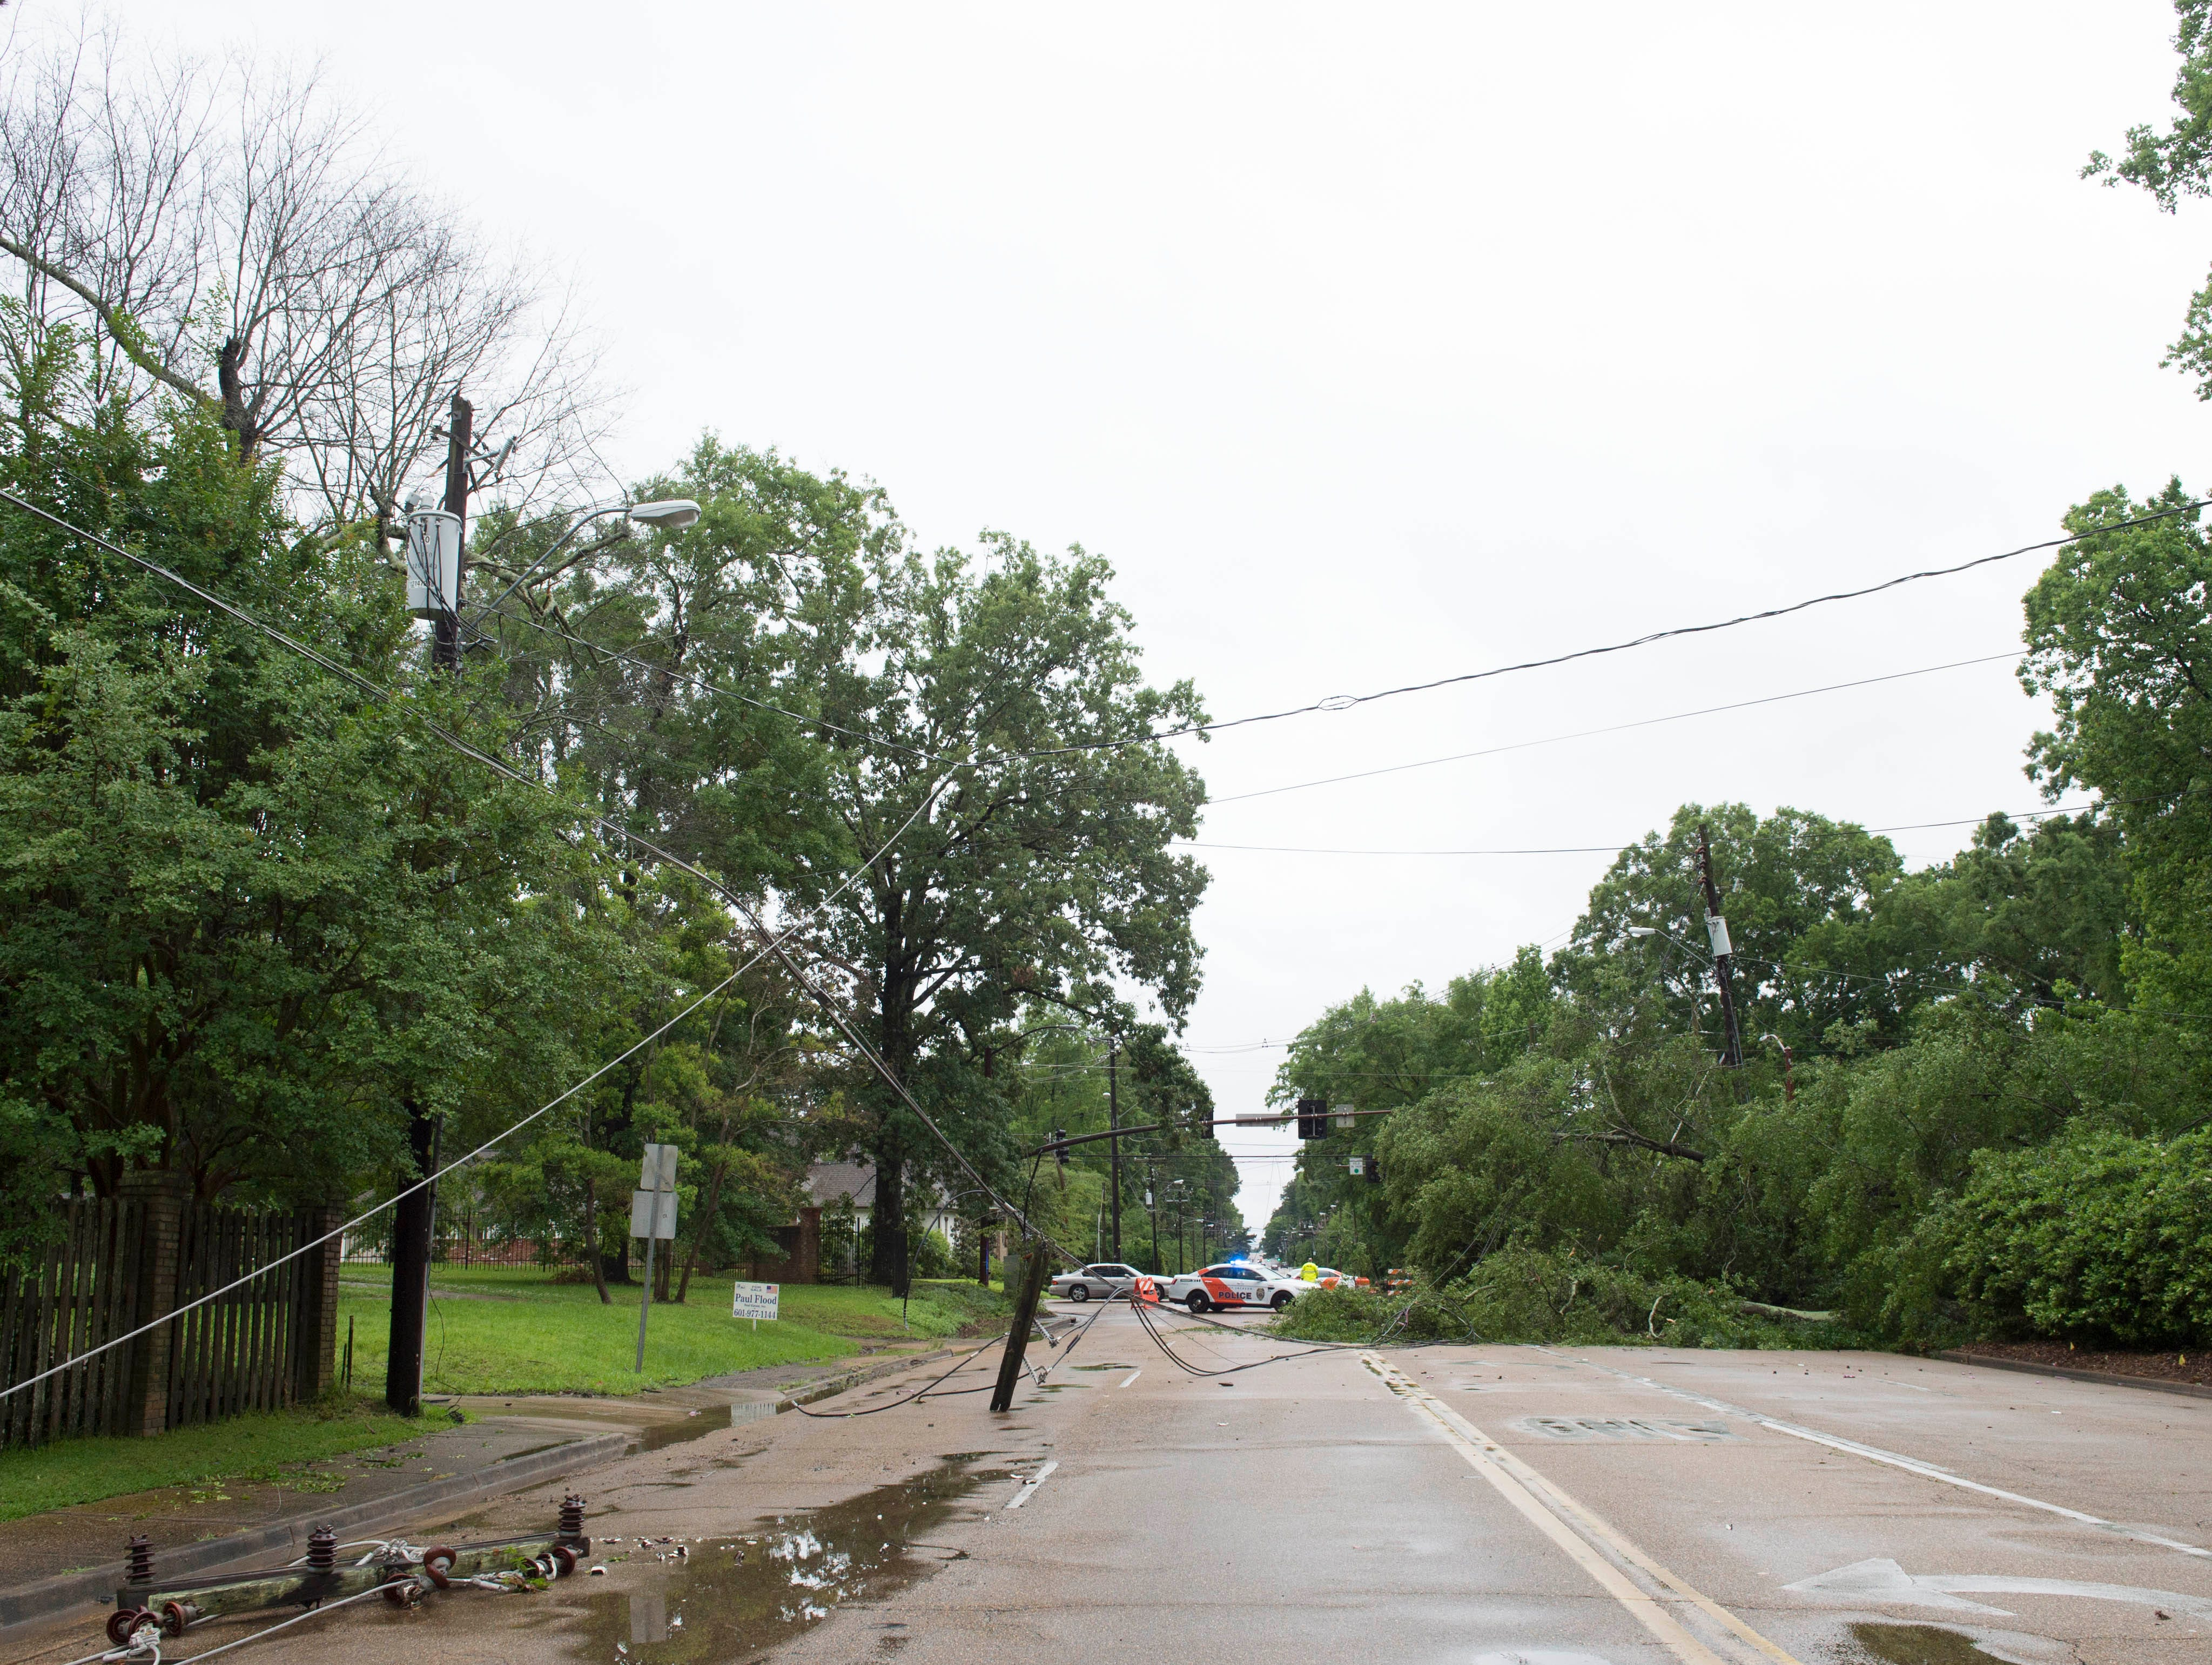 A fallen tree pulled power lines down along Ridgewood road near the intersection at Northside drive in Jackson. The incident caused traffic lights to go out and altered traffic along Ridgewood road. Thursday, May 9, 2019.